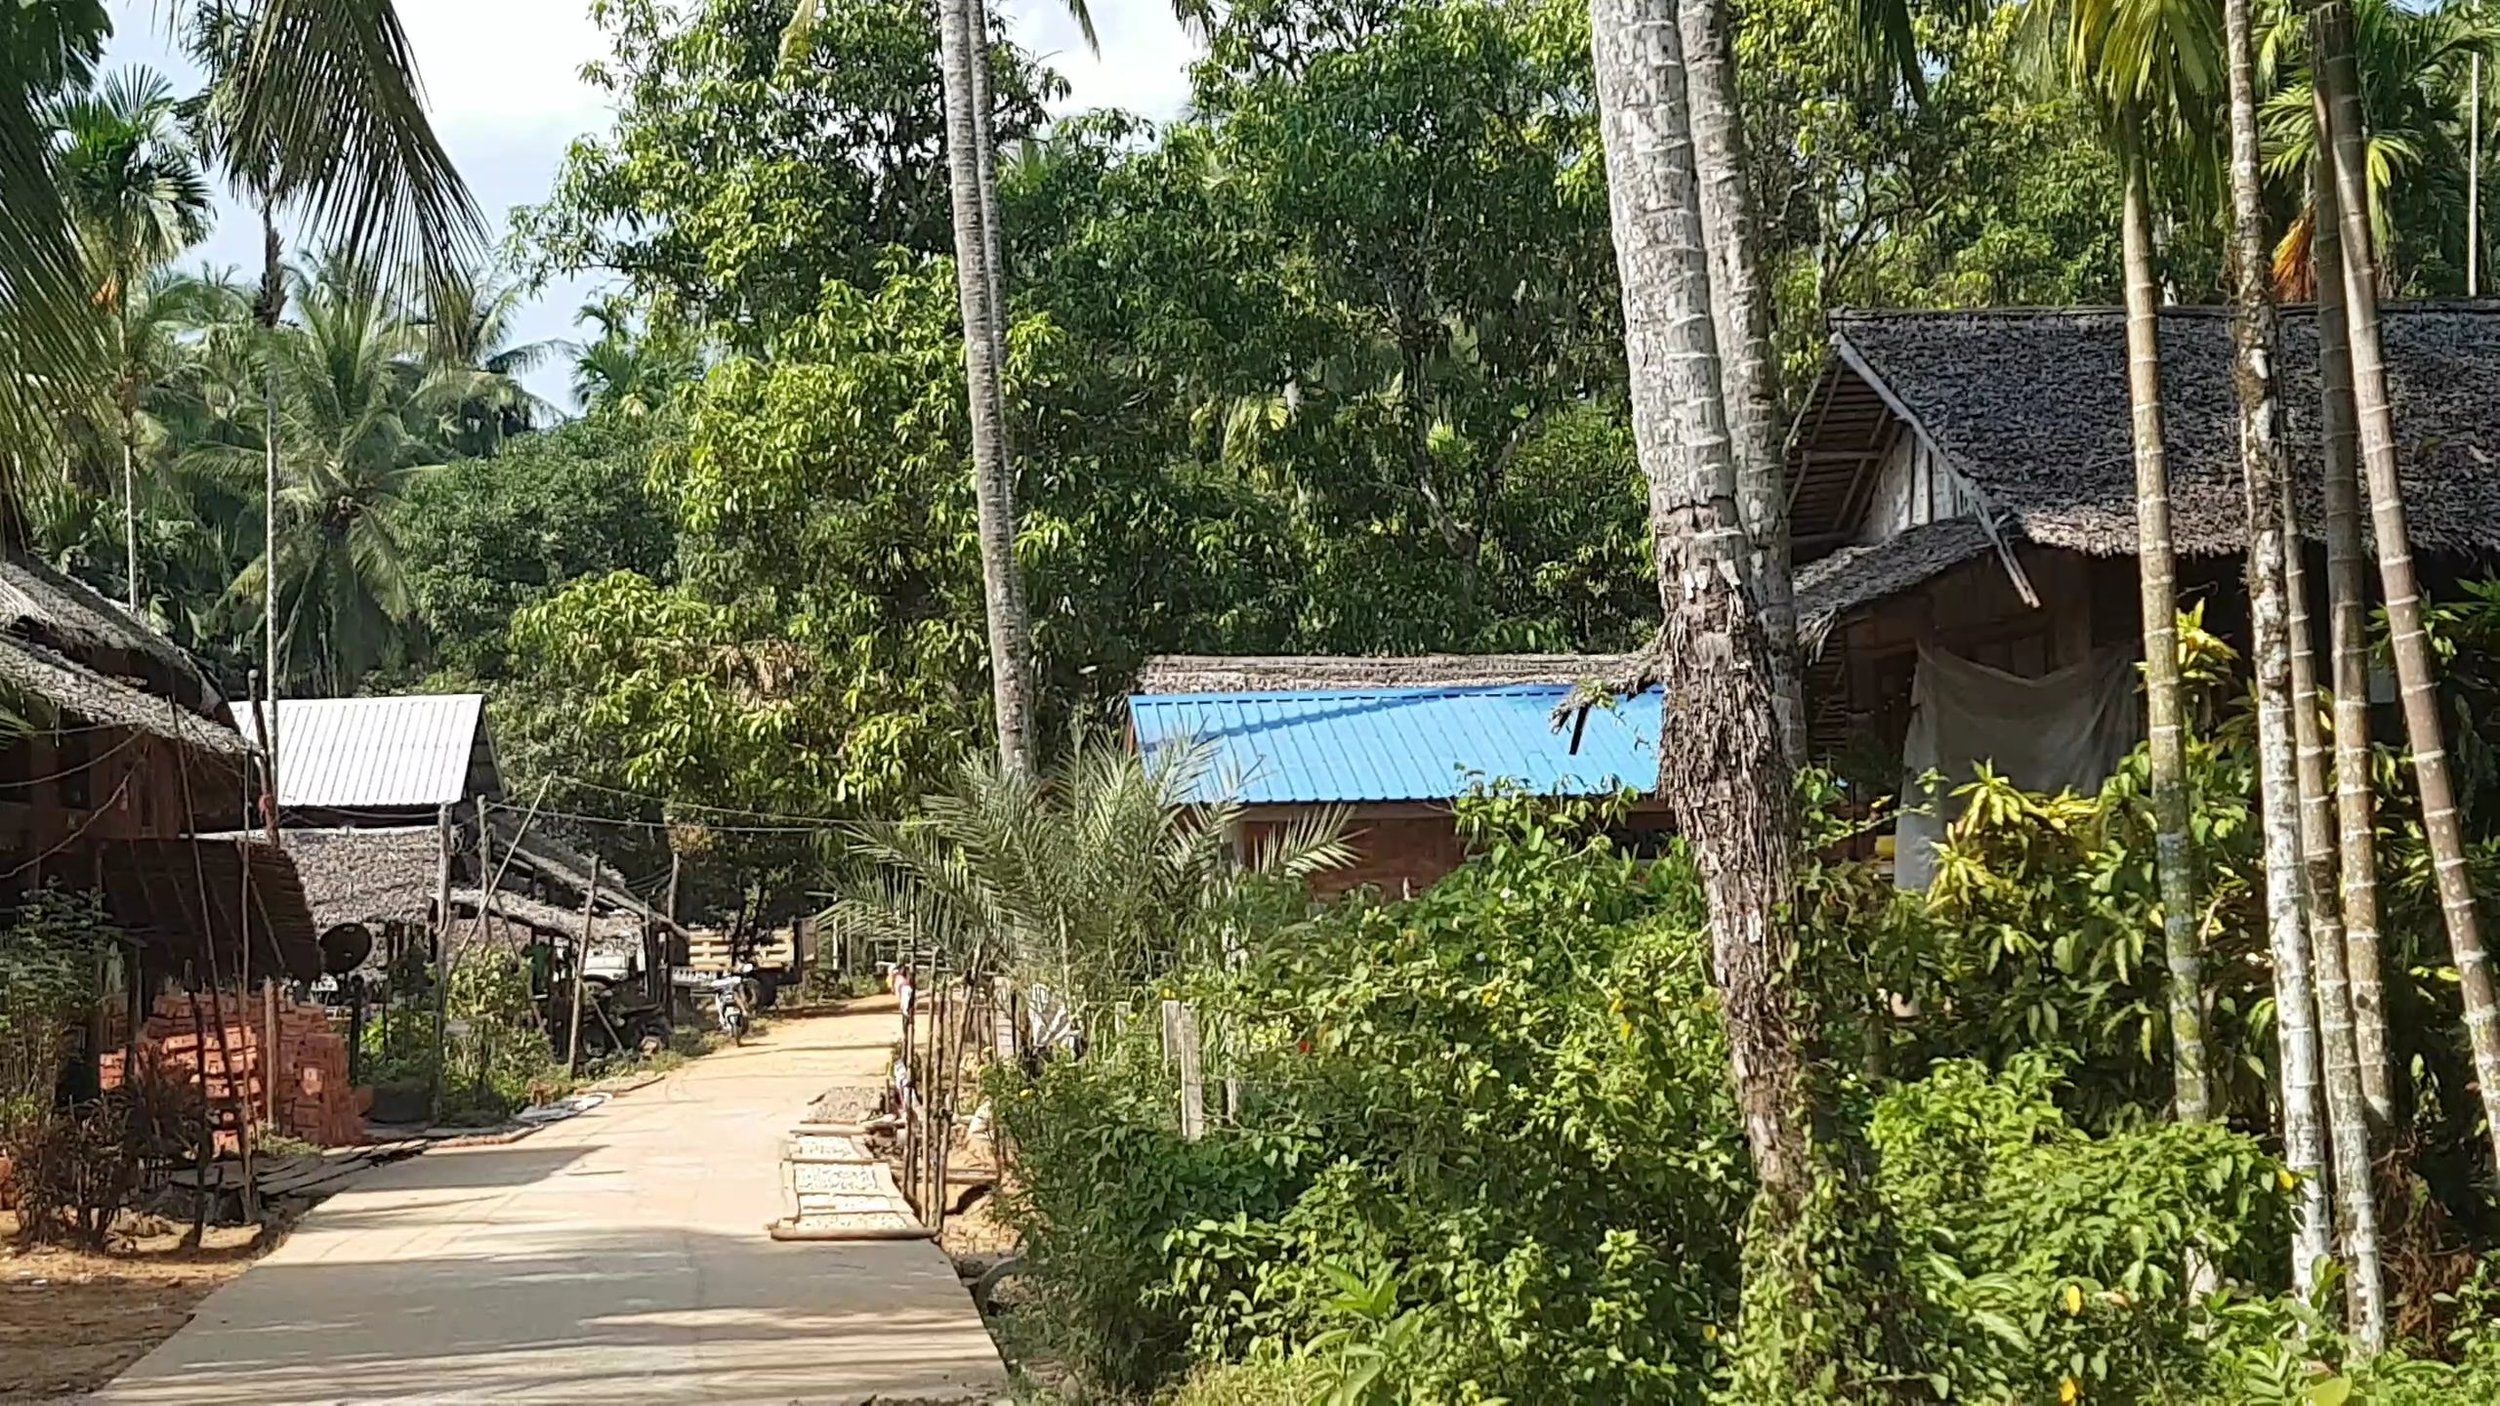 We have found and learnt from meesayar by looking for distribution poles made of collected tree trunks and bamboo poles along the street, signs of a local mini-grid.